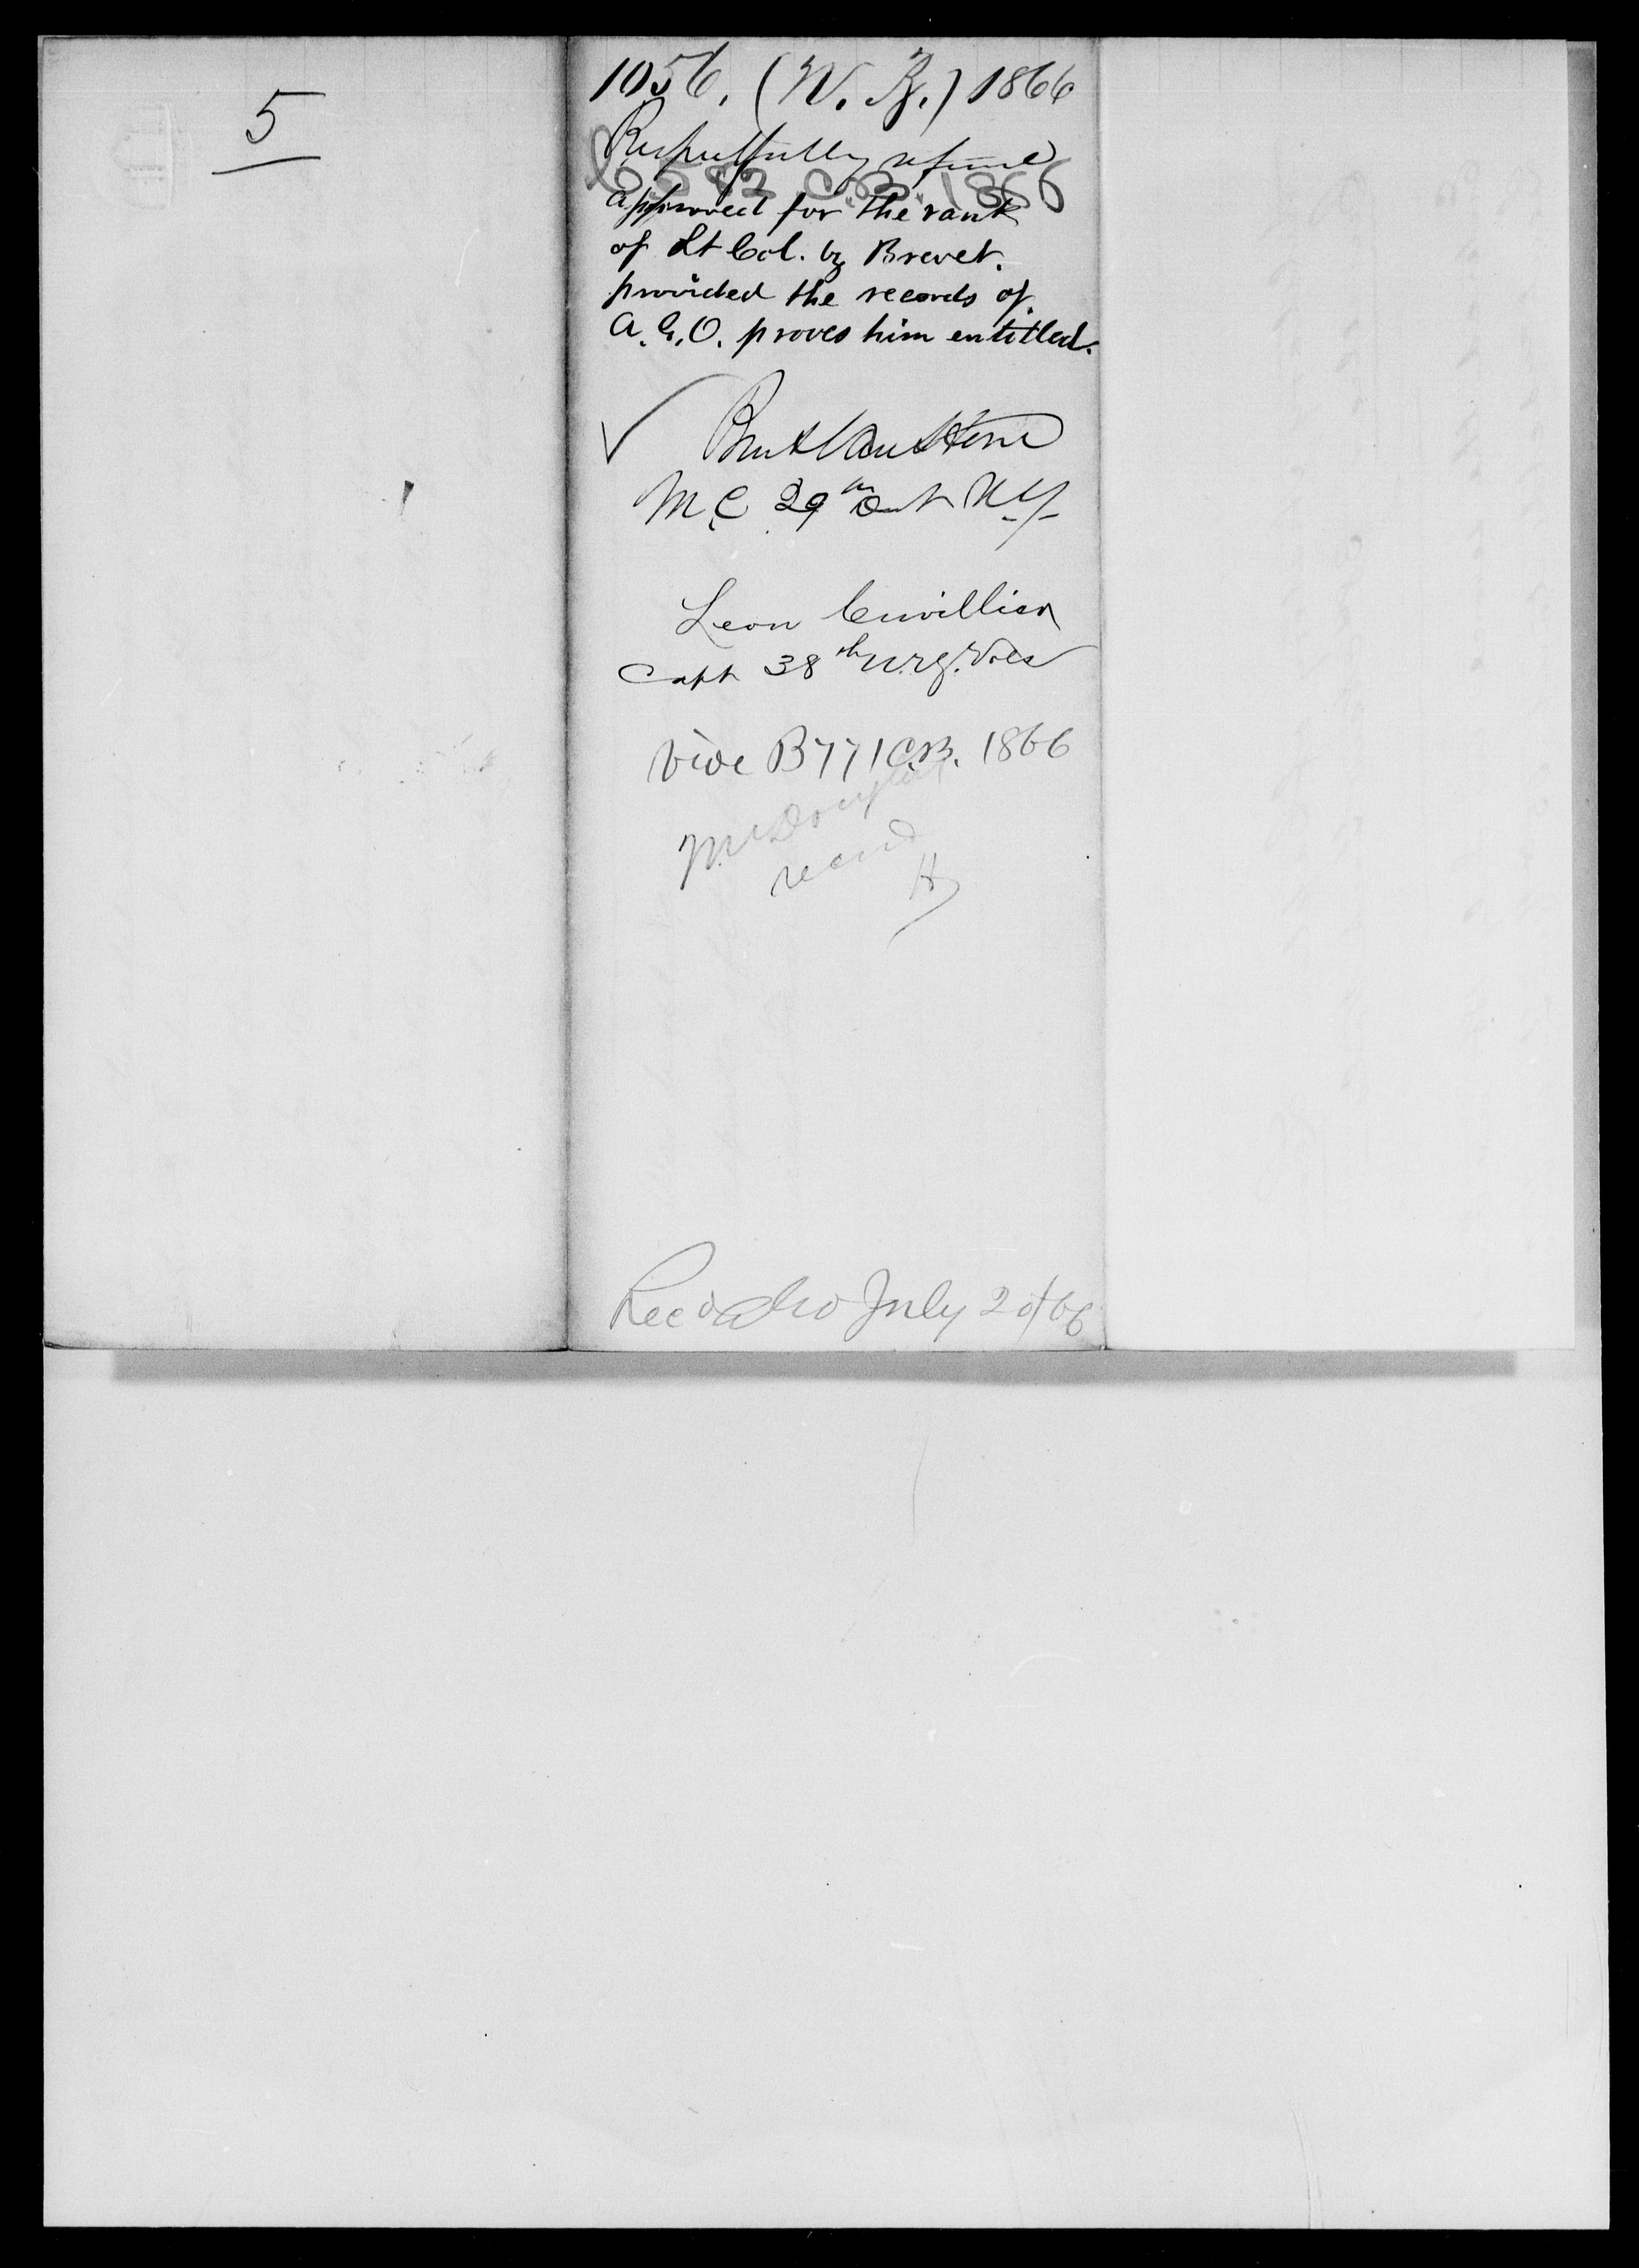 Cuvillier, Leon - State: New York - Year: 1866